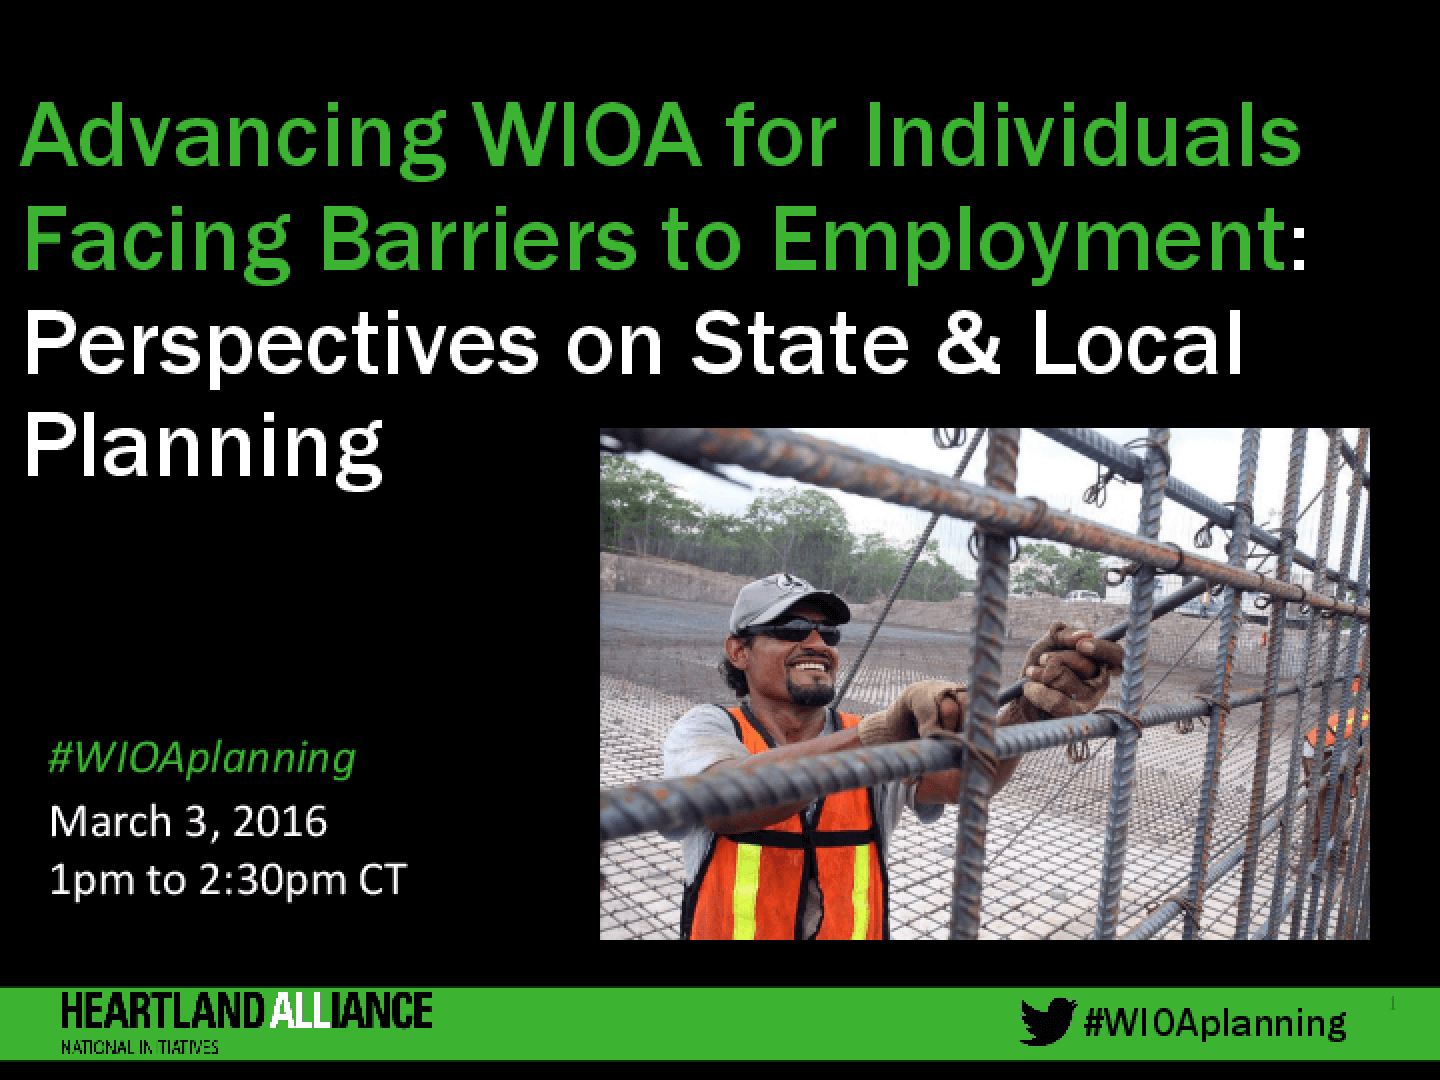 Advancing WIOA for Individuals Facing Barriers to Employment: Perspectives on State and Local Planning